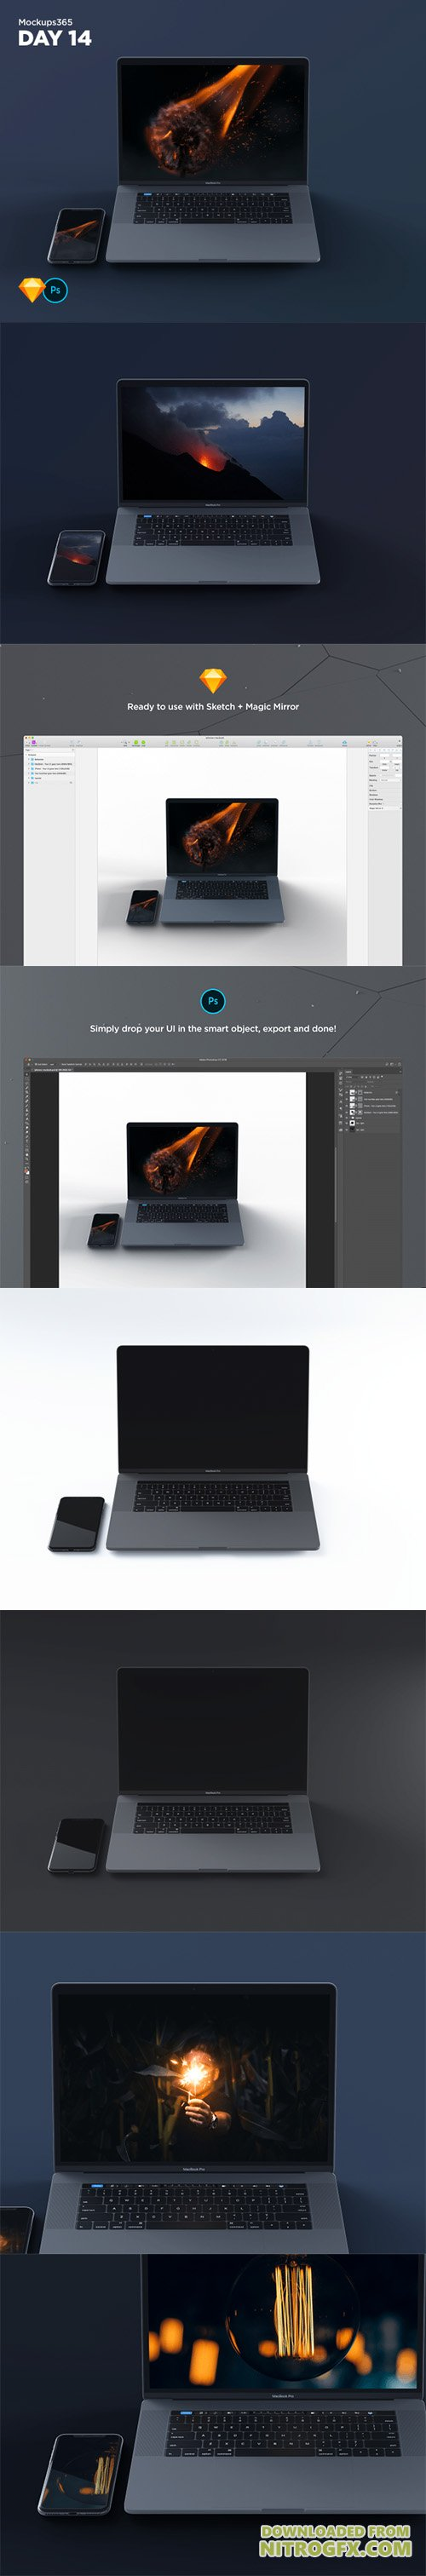 Mockups365: Day 14 - Macbook & iPhone X mockups for Sketch & Photoshop 4K